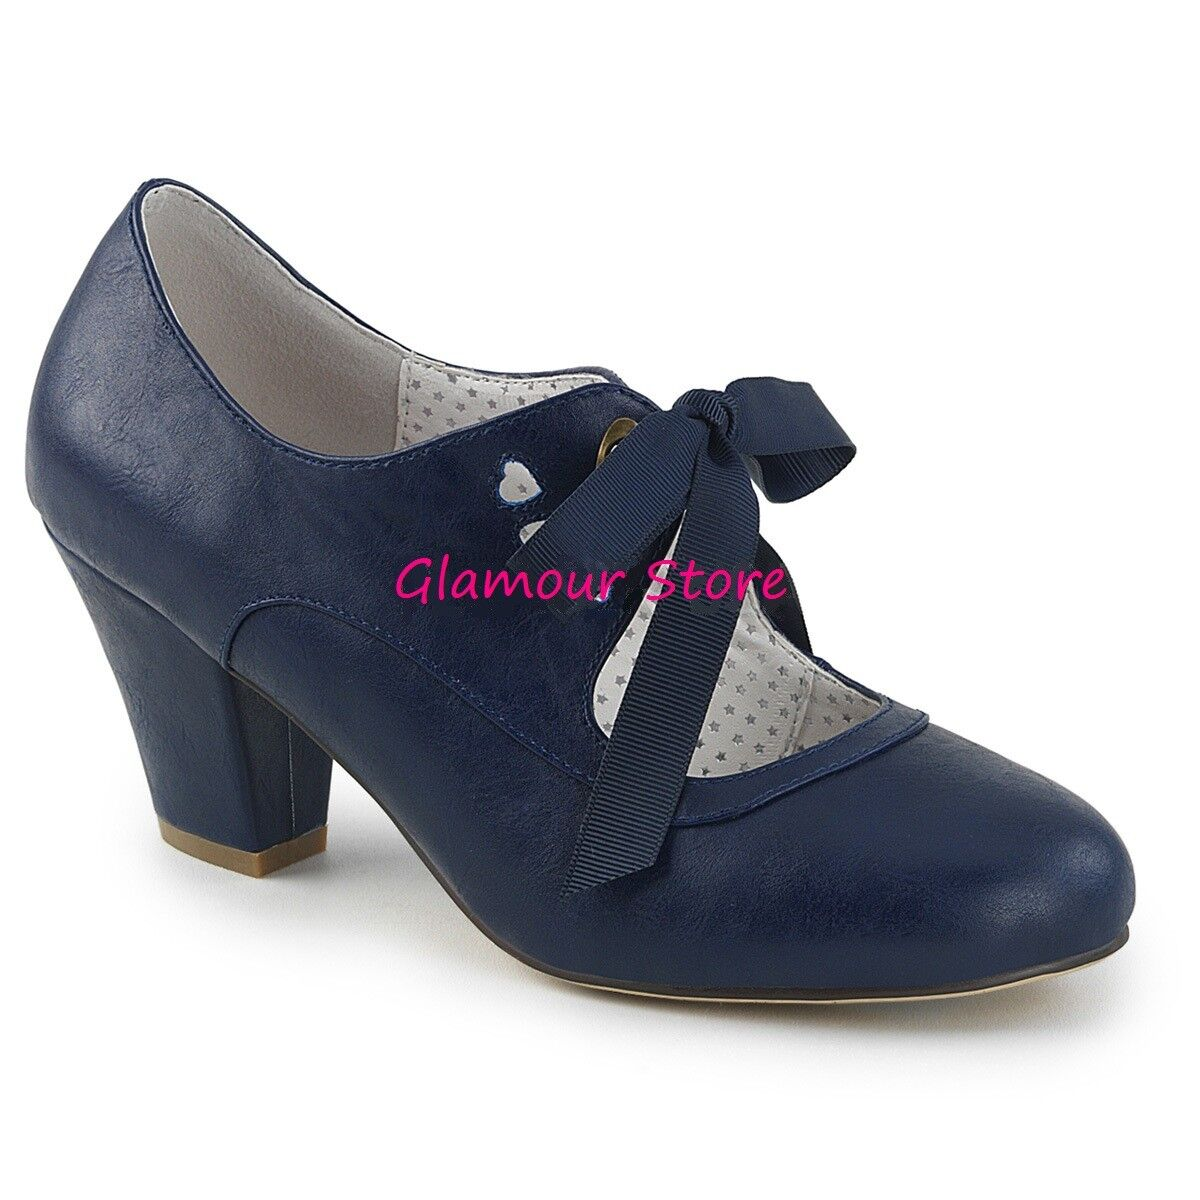 Sexy DECOLTE' tacco 6,5 dal 35 a 41 bleu NAVY fiocchetto chaussures PIN UP glamour